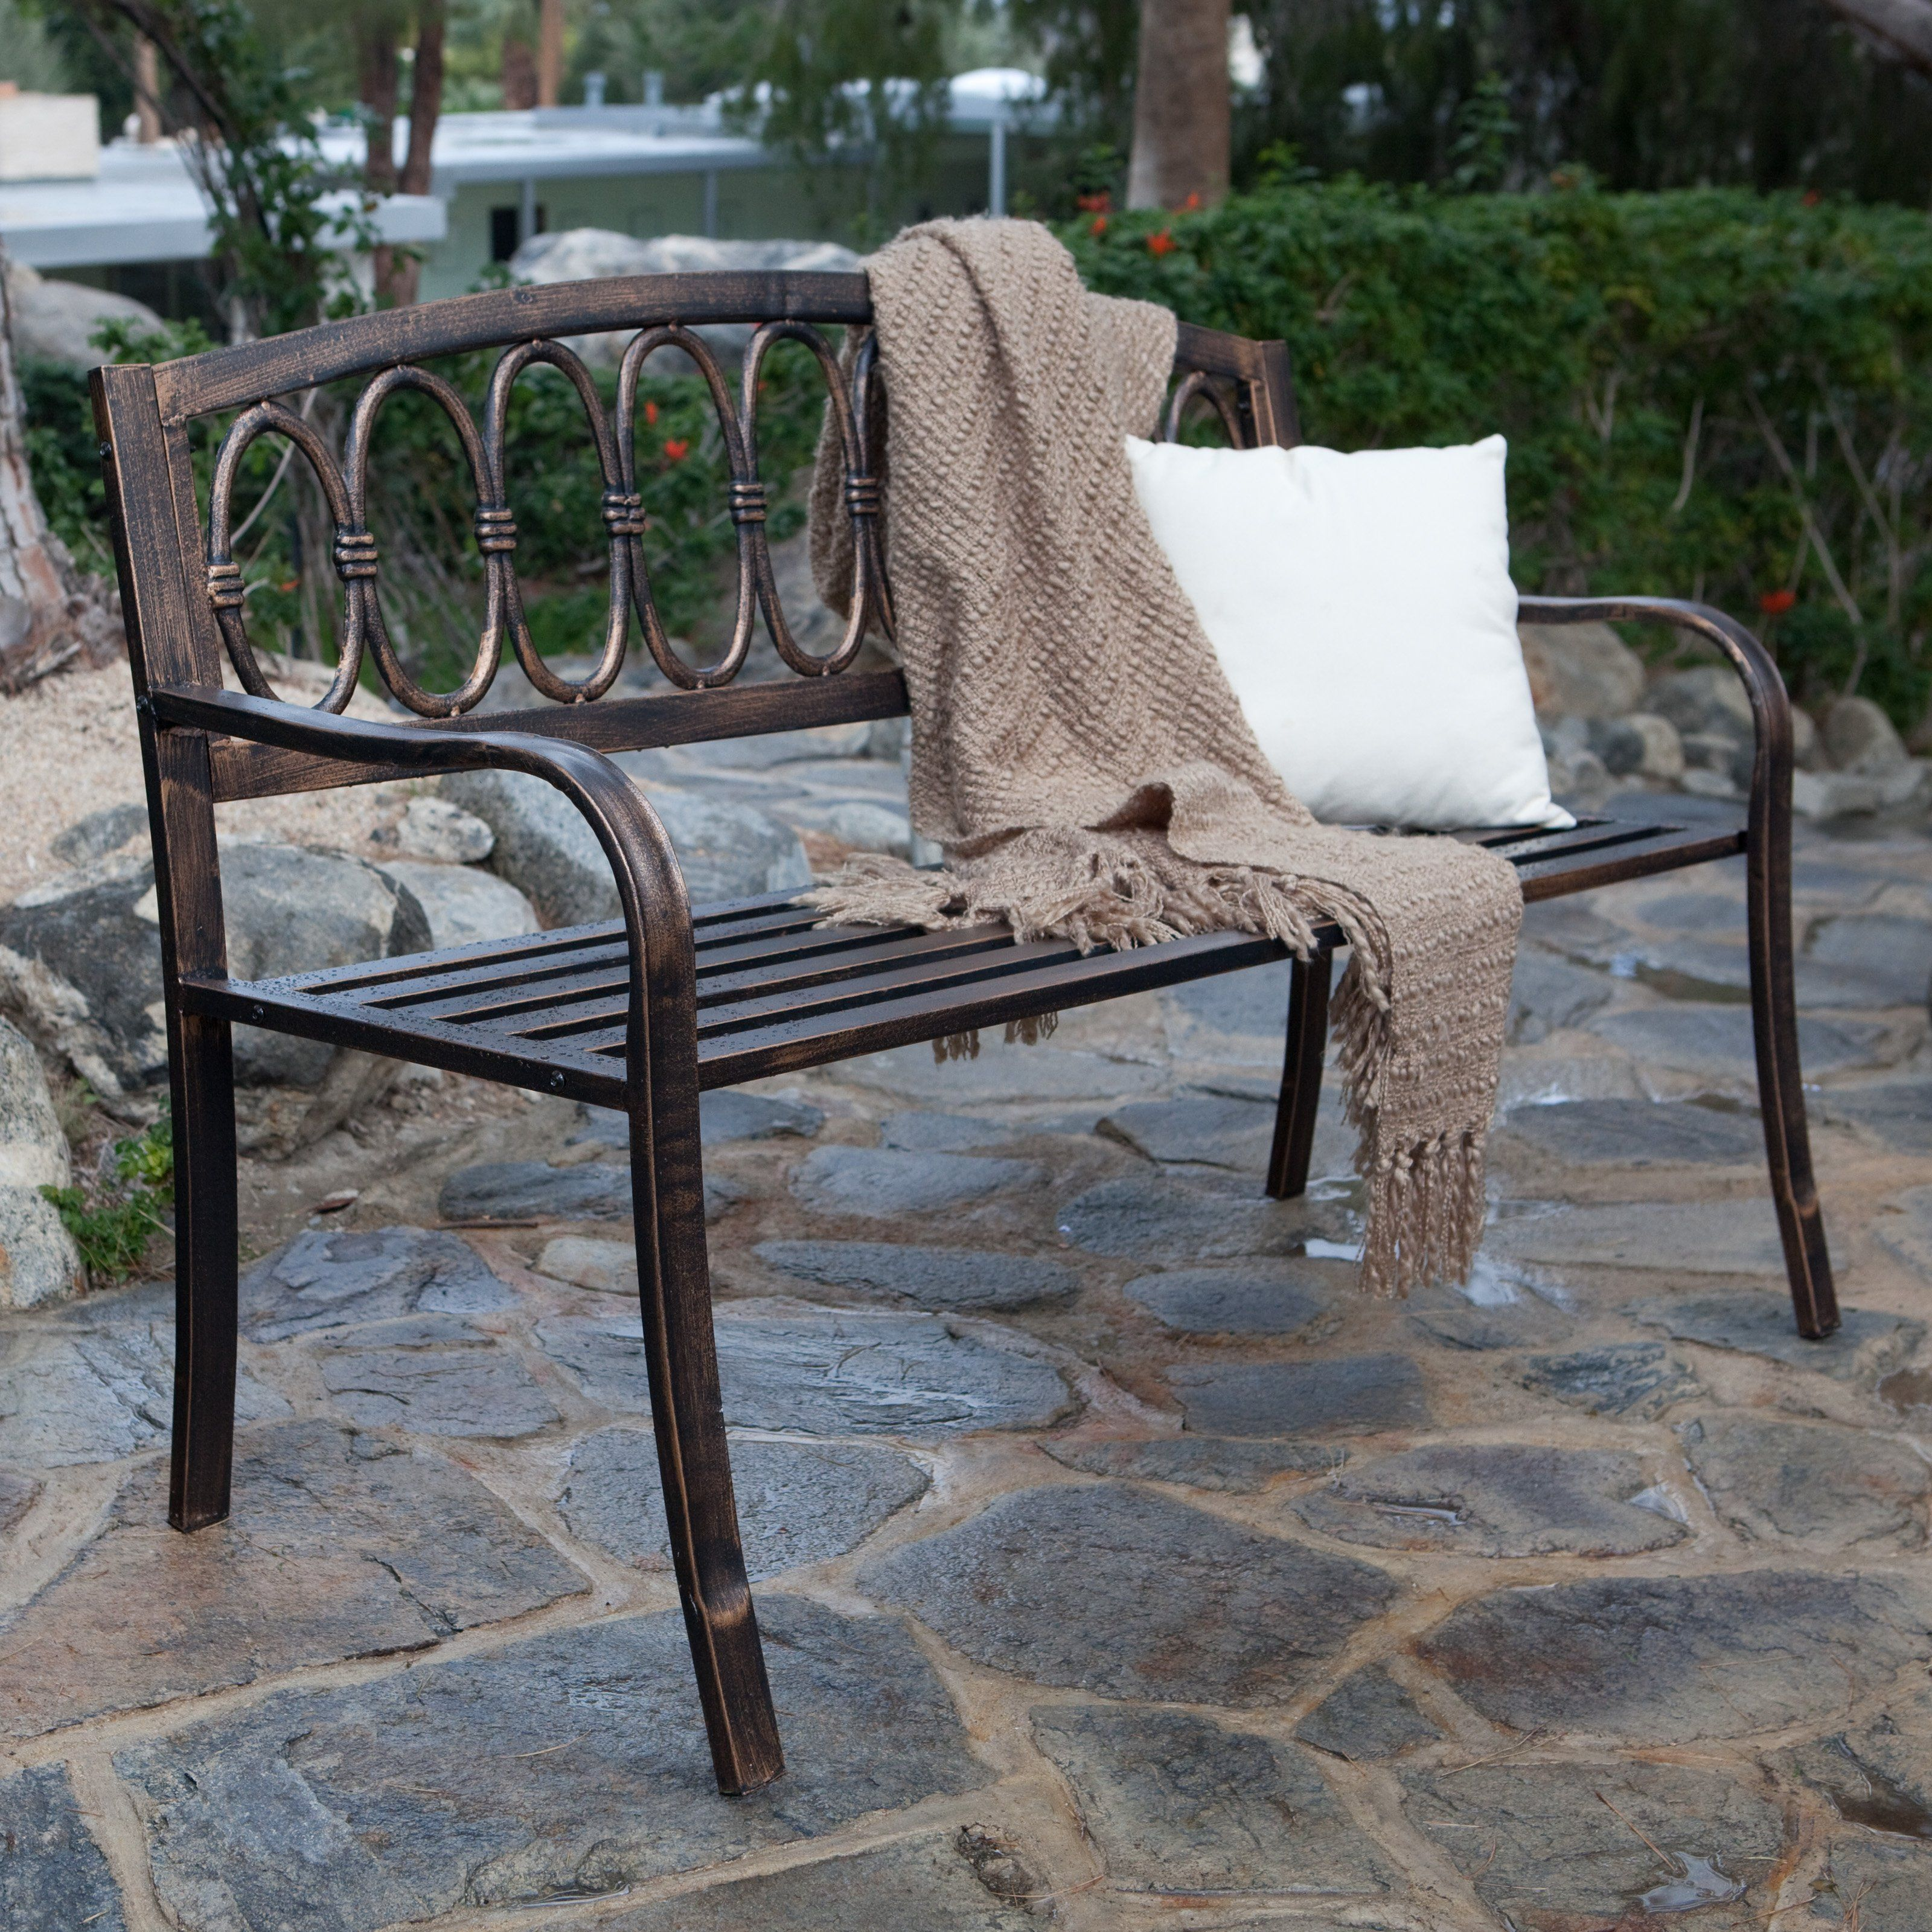 Have To Have It. Verona 4-ft. Curved Back Garden Bench